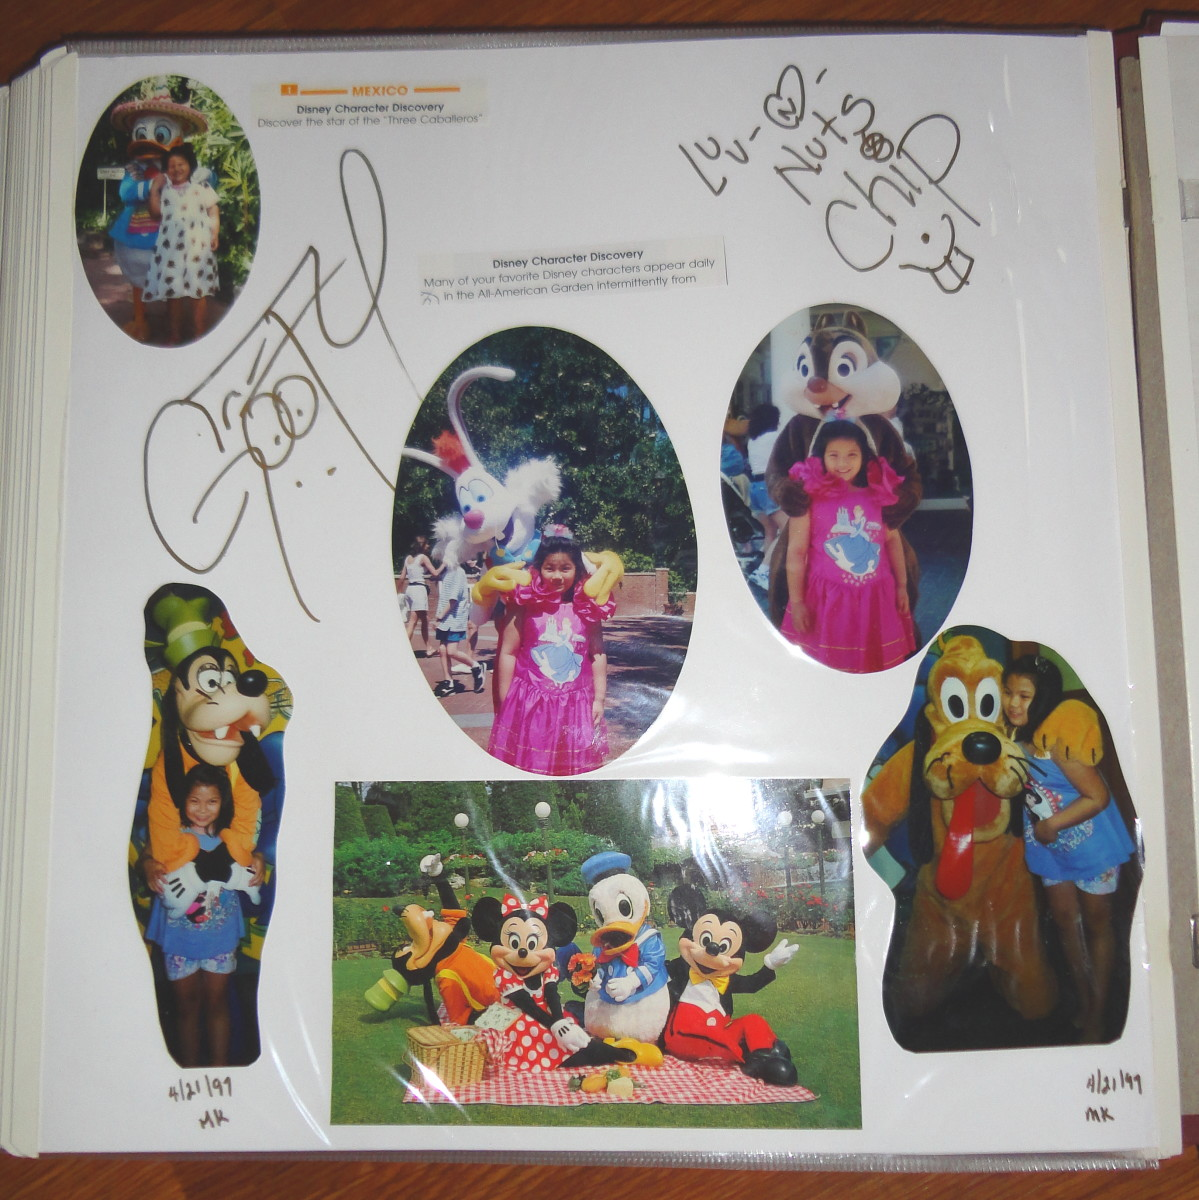 As long as you use an acid free, lignin free pen for the characters to sign, a photo album works great. It's great for pairing signatures with photos if you wish. (Oh, and the pic of Chip isn't shown, just Dale's - but that's OK!